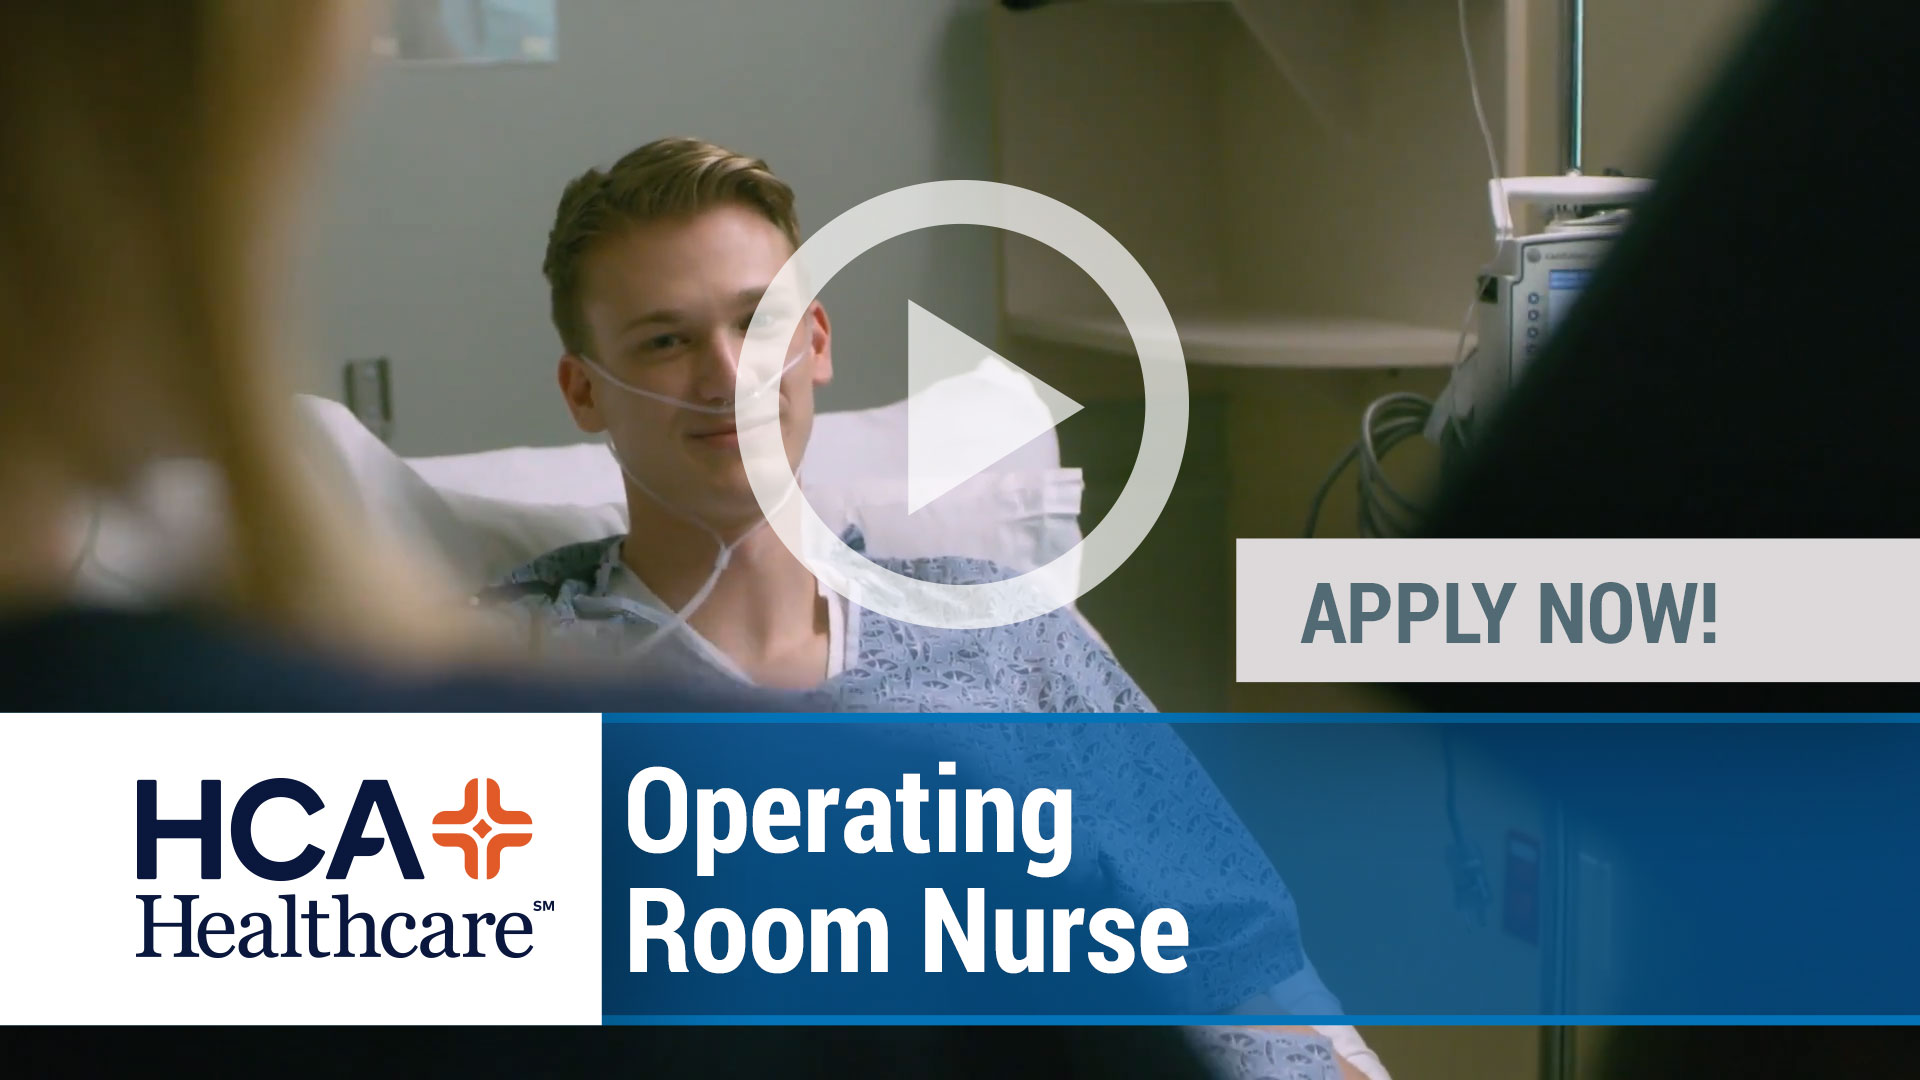 Watch our careers video for available job opening Operating Room Nurse in Portsmouth, New Hampshire